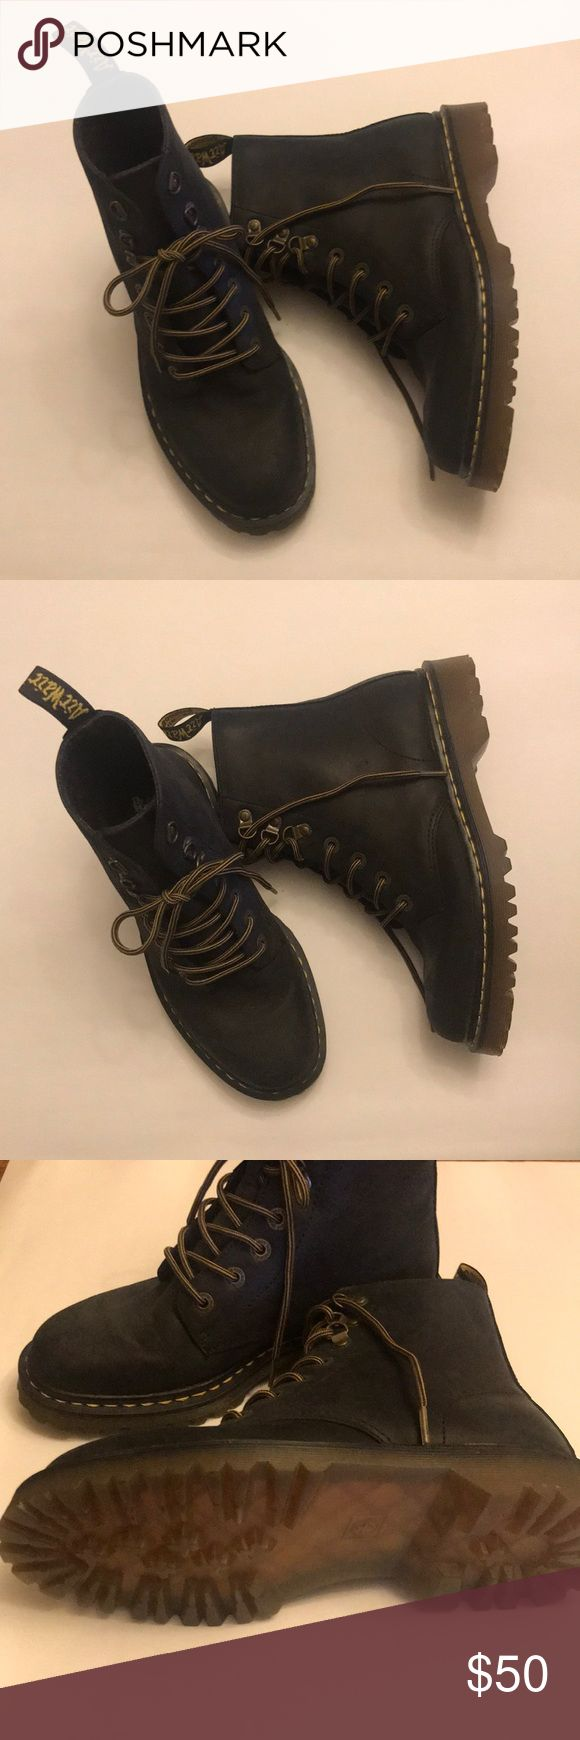 Dr Martens Luana Black Combat Boot, Size 9 Women's size 9. Never worn, no original box. Leather upper in a casual lace-up ankle boot style with a round toe. Full-lace-up front with metal eyelets and D-rings. Pull loop at collar for easy on and off. Leather and textile lining with a cushioning insole. 6 inch shaft height, 11 Dr. Martens Shoes Combat & Moto Boots